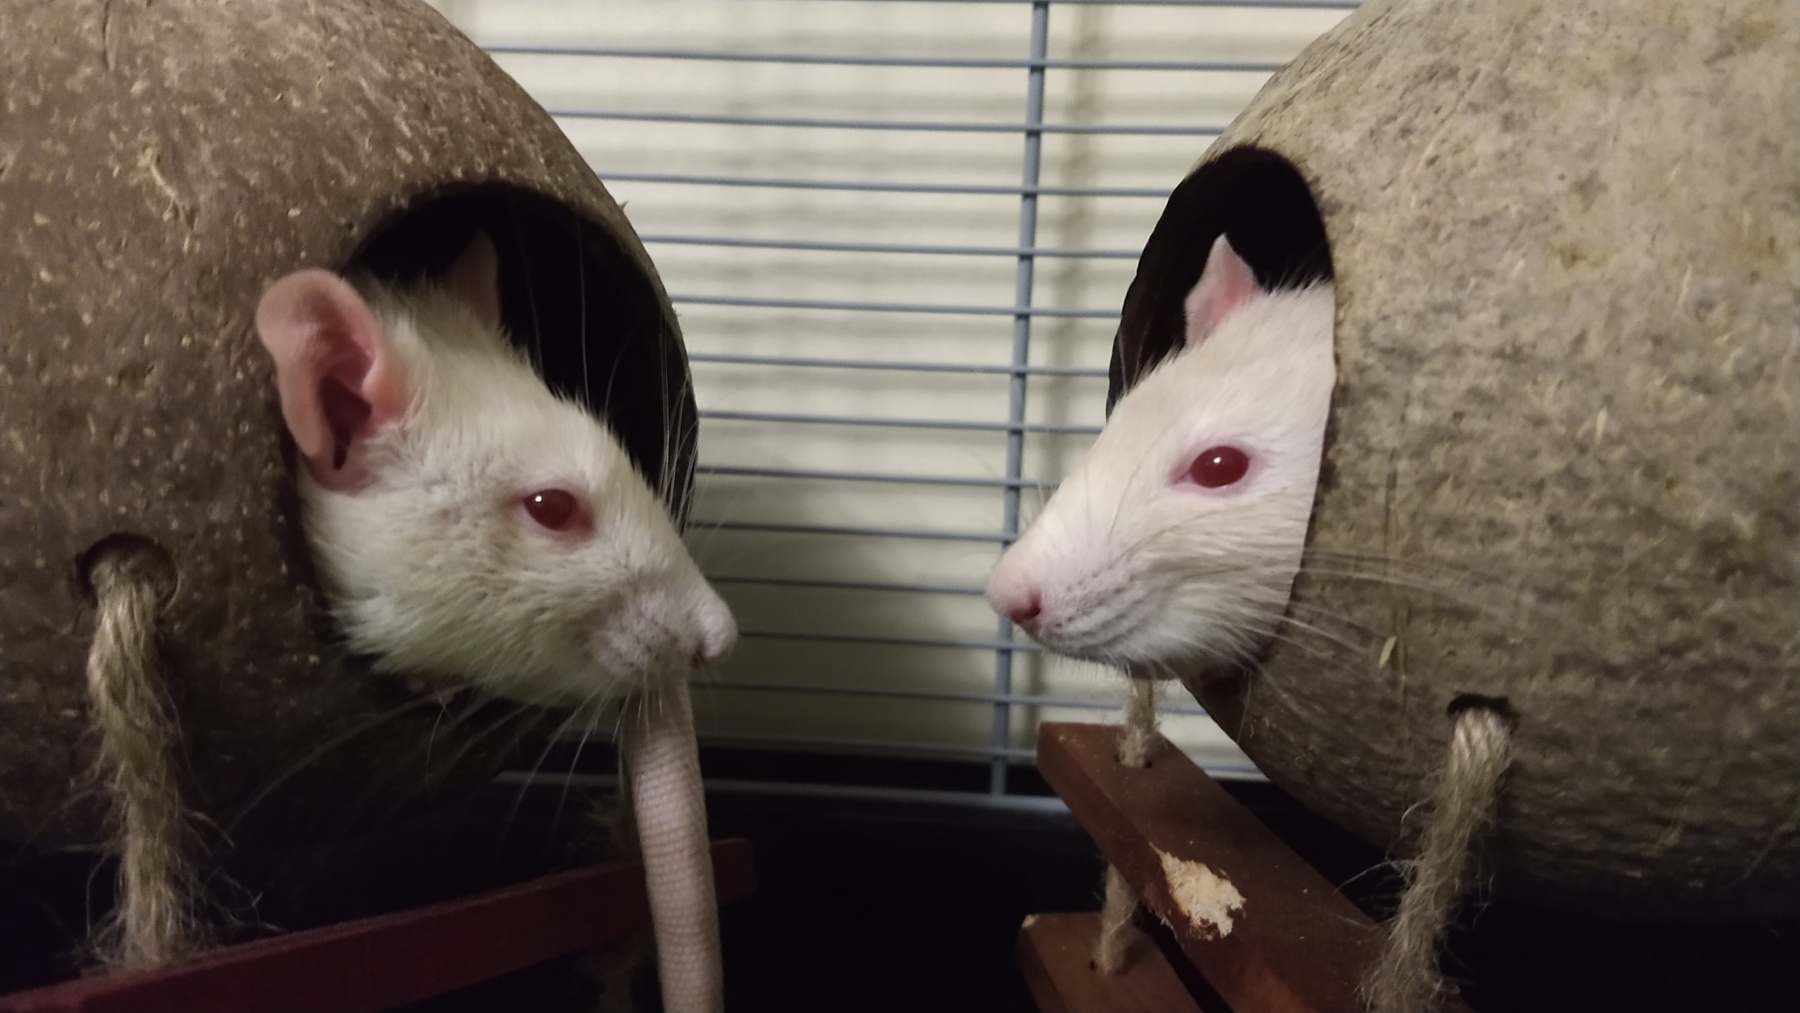 Rat bookends, Apr 2019.